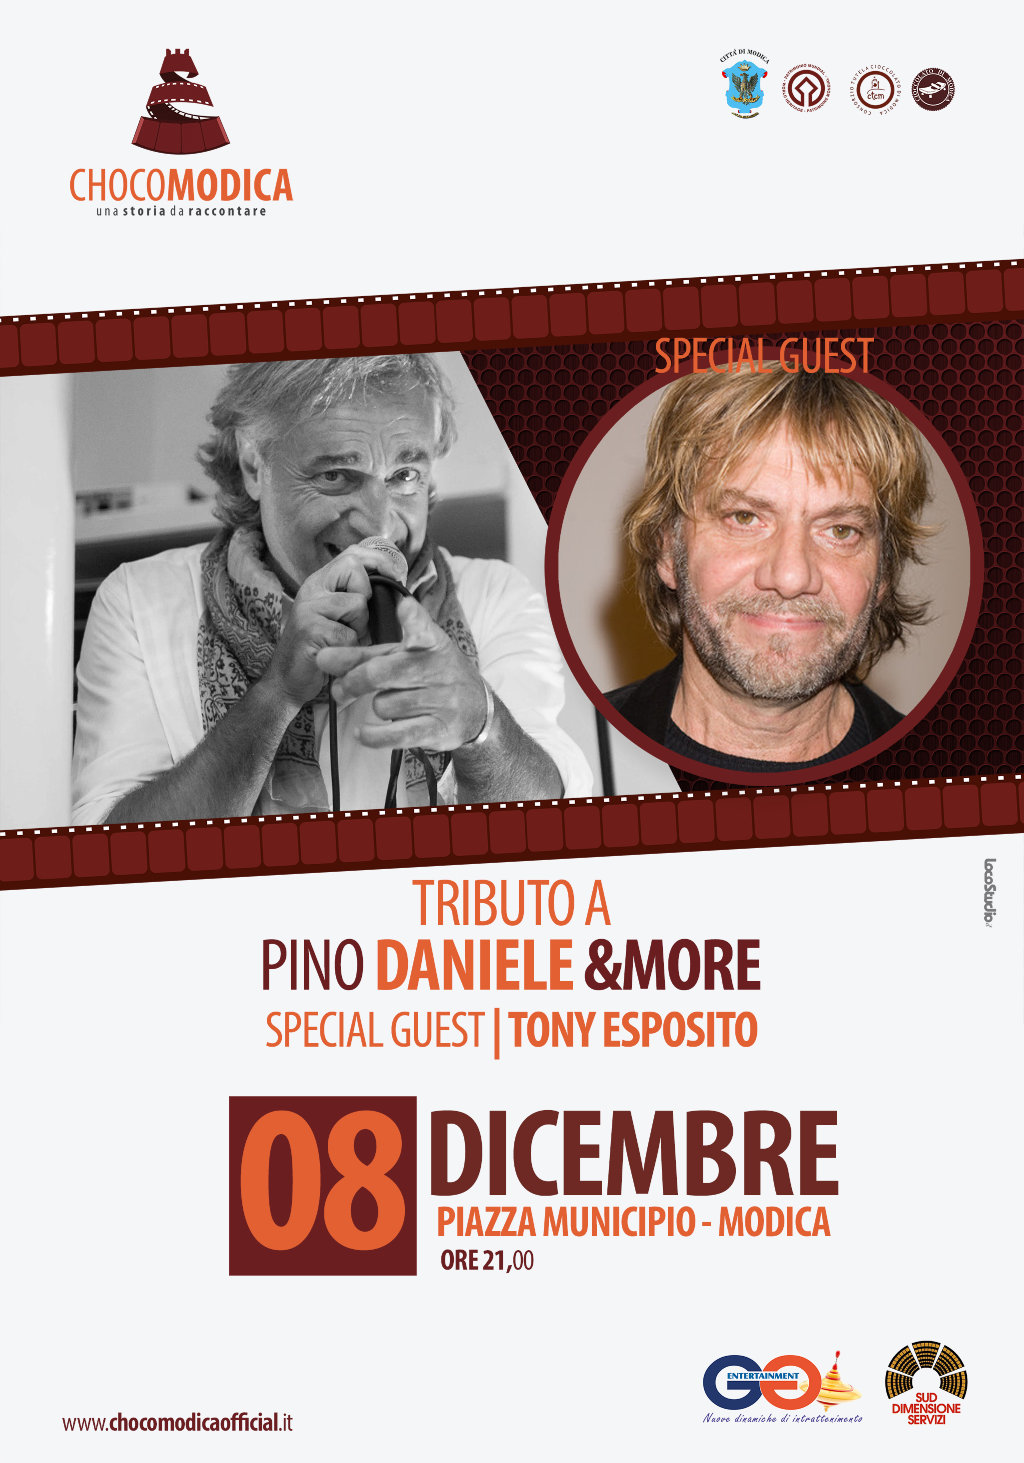 Pino Daniele & More | Chocomodica 2016